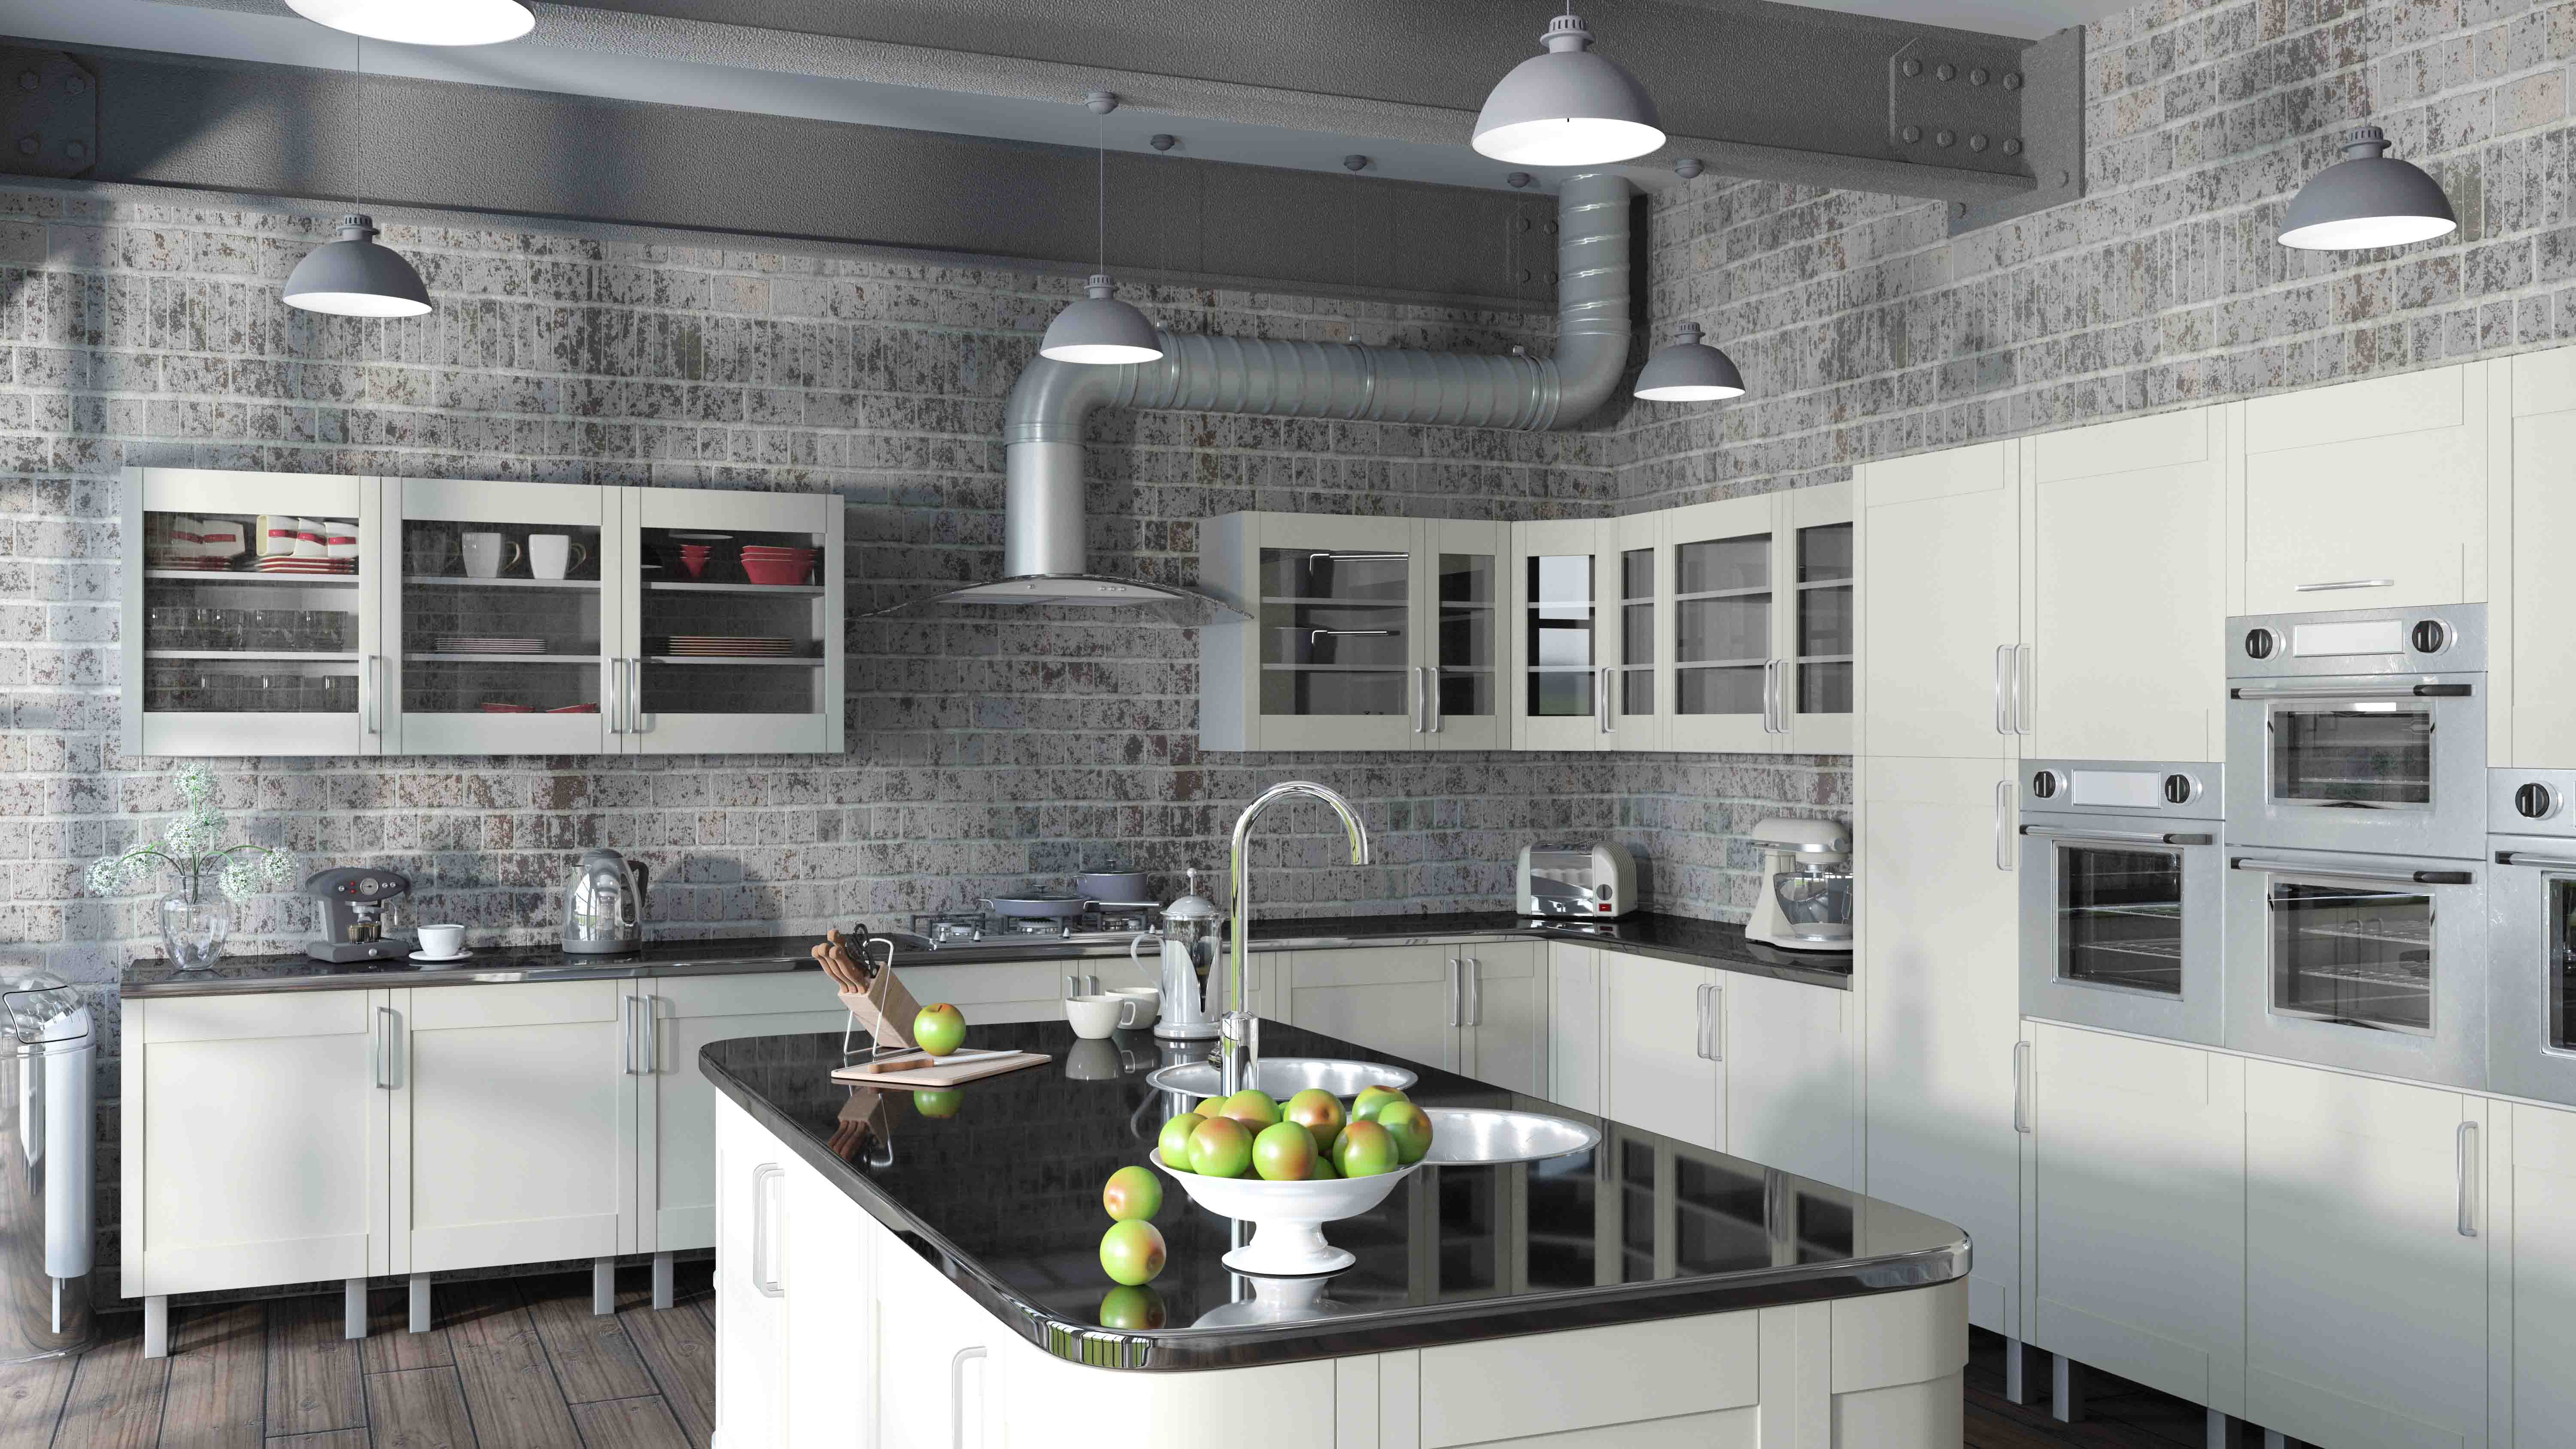 Do's and don'ts when it comes to kitchen remodelling?